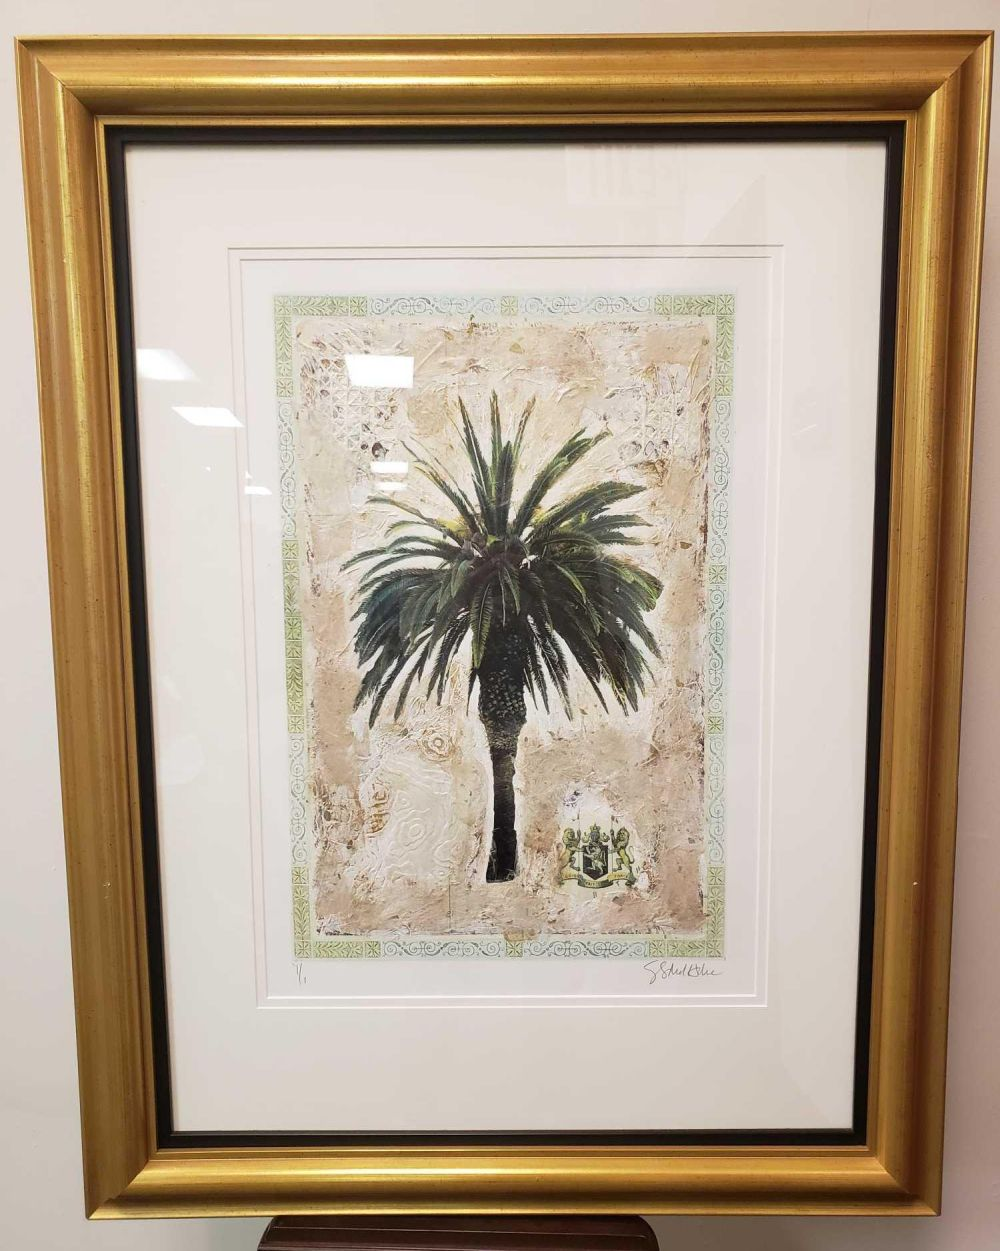 Lot 914: Starlie Sokol Hohne Palm Tree II Original Mixed Media Artwork